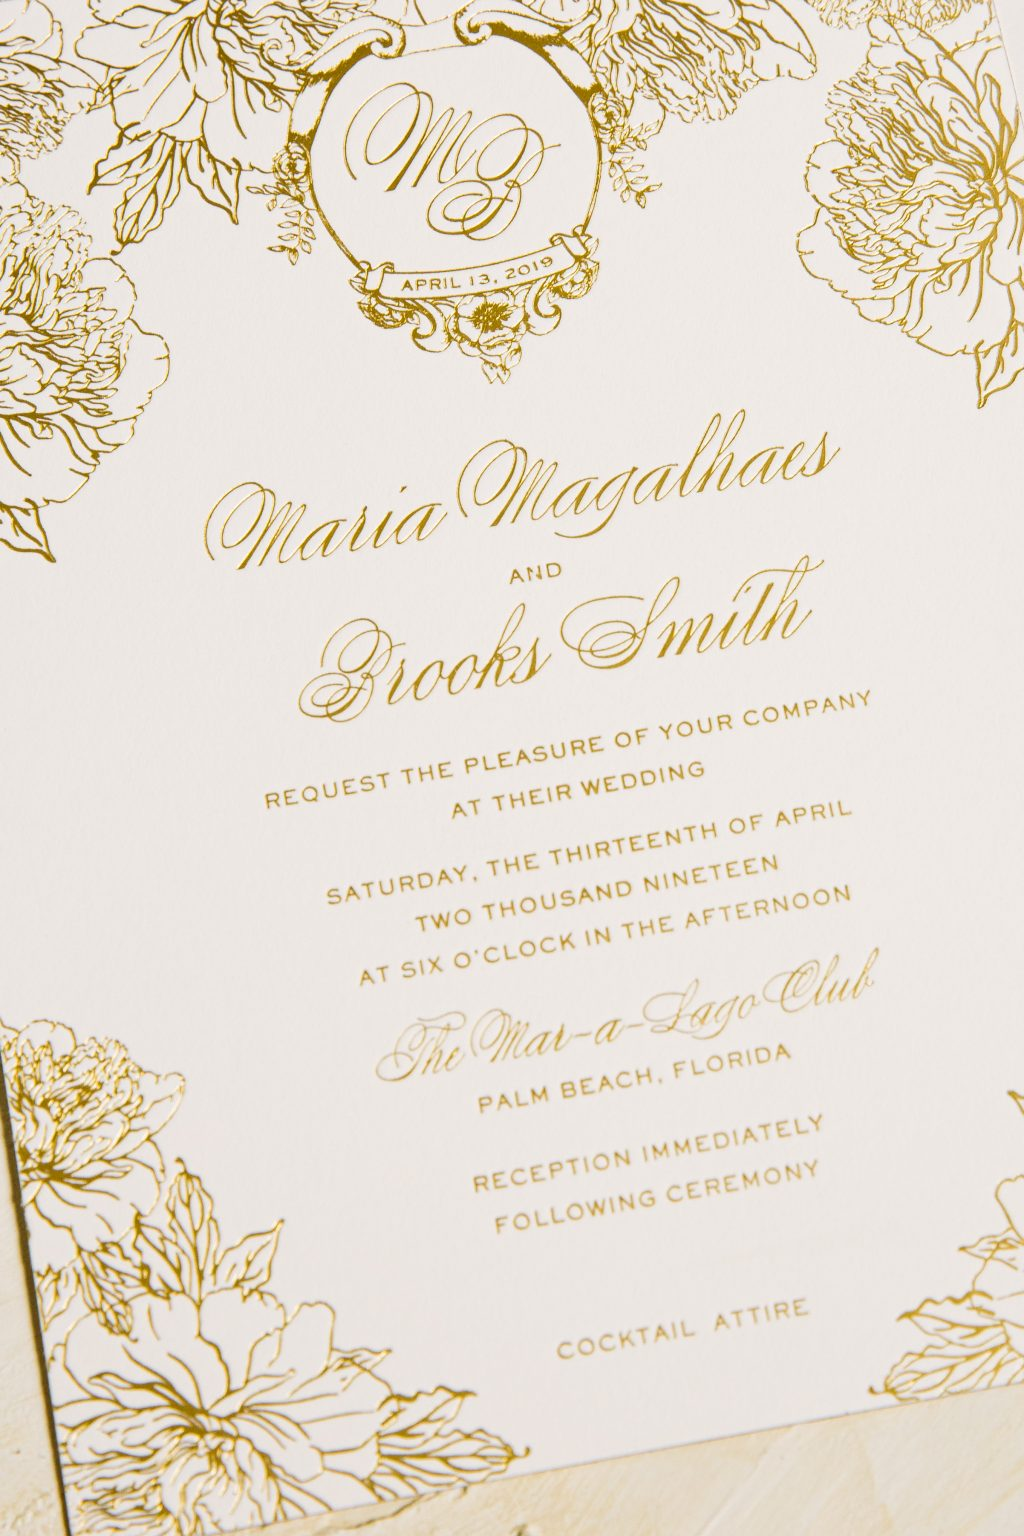 Floral gold foil wedding invitations